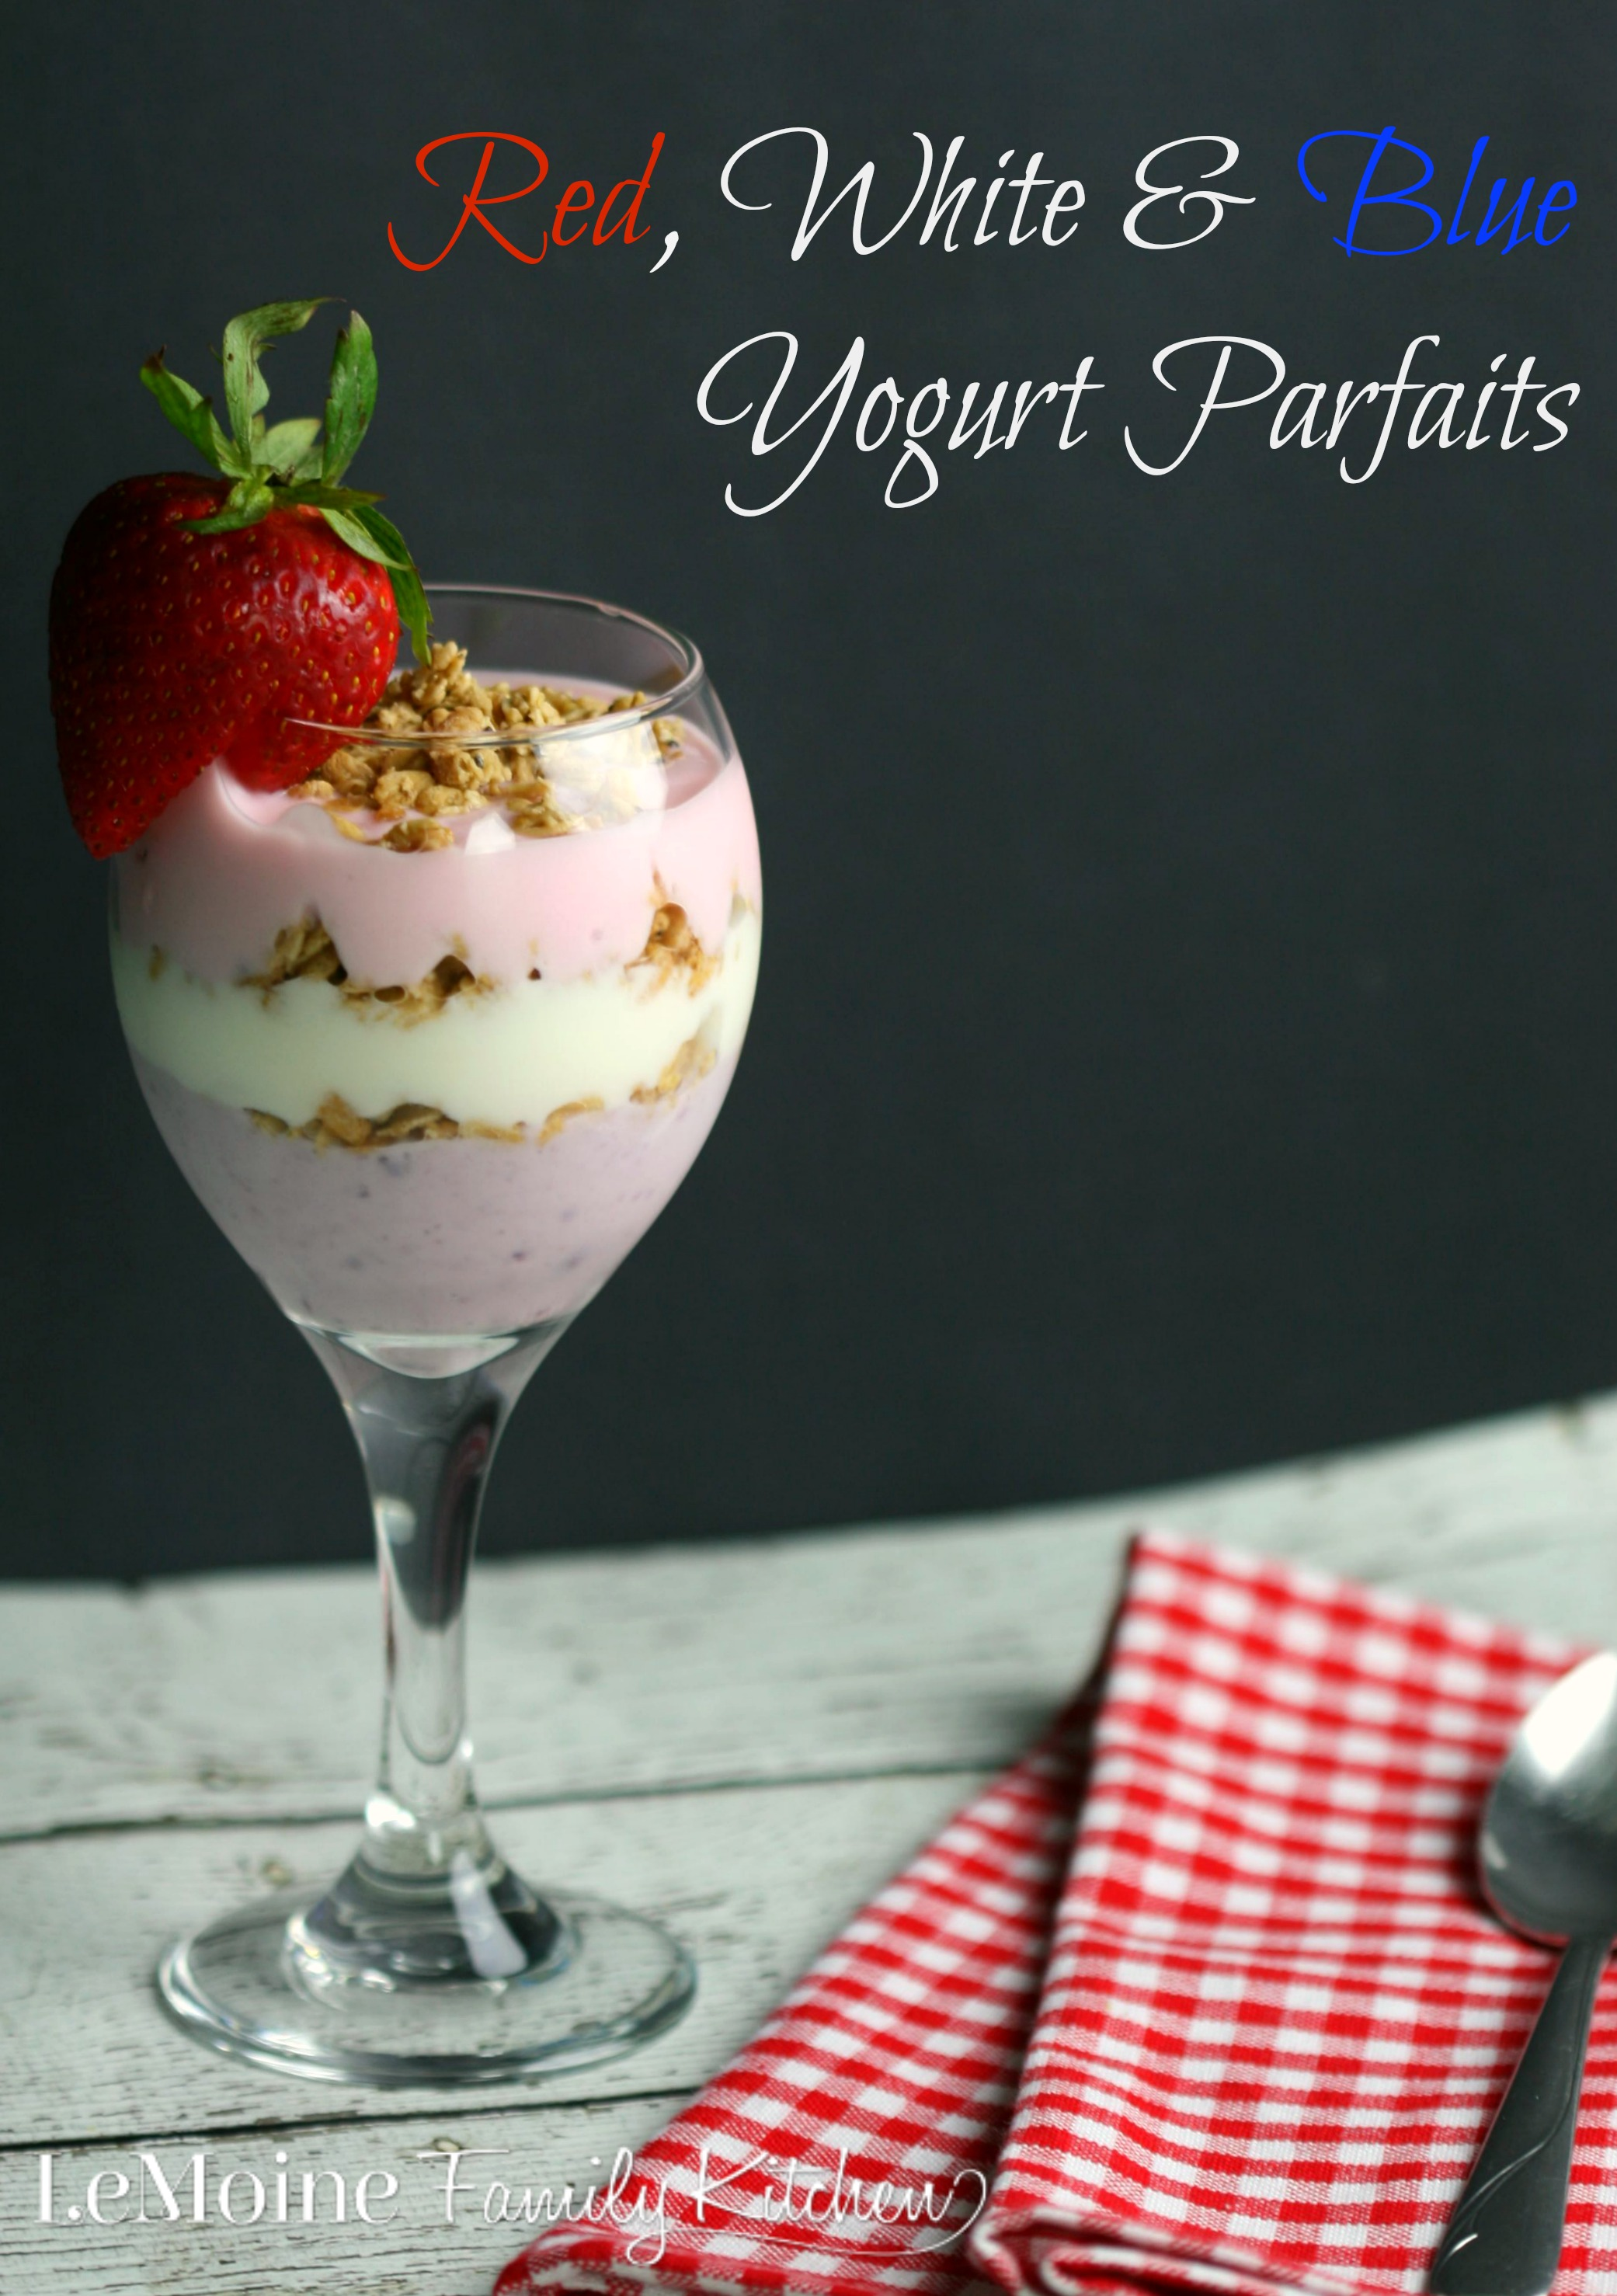 Red, White & Blue Yogurt Parfaits | LeMoine Family Kitchen. A simple, fun and delicious treat with a Patriotic twist! Great healthy breakfast or snack.